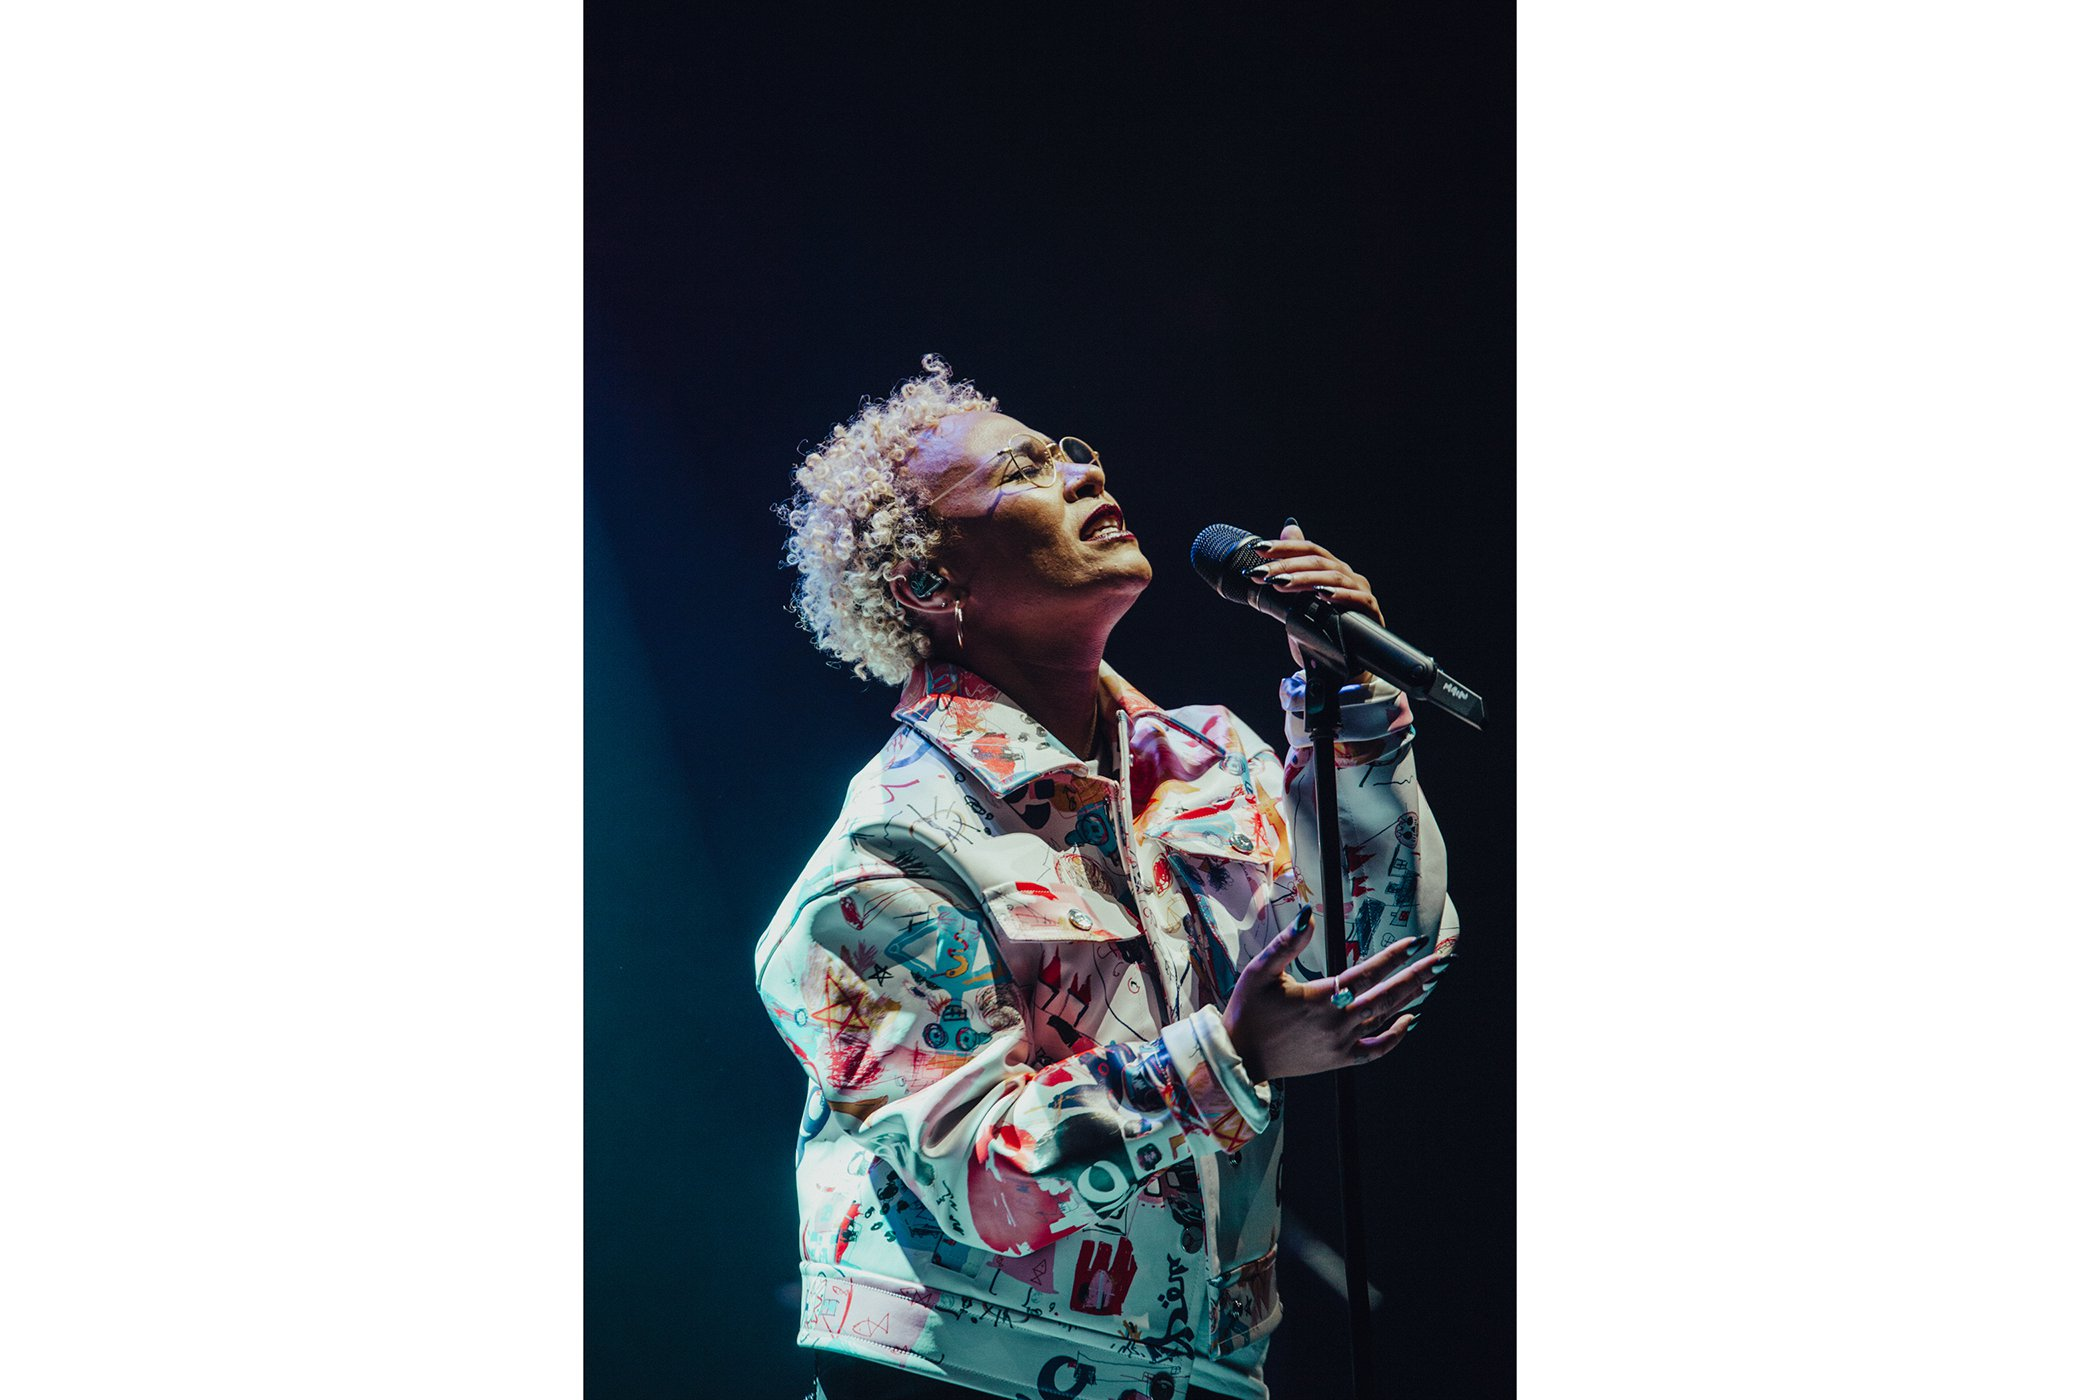 Emeli Sandé performs on stage for Global Citizen Live London, at the O2 Academy Brixton on April 17, 2018 in London, England.